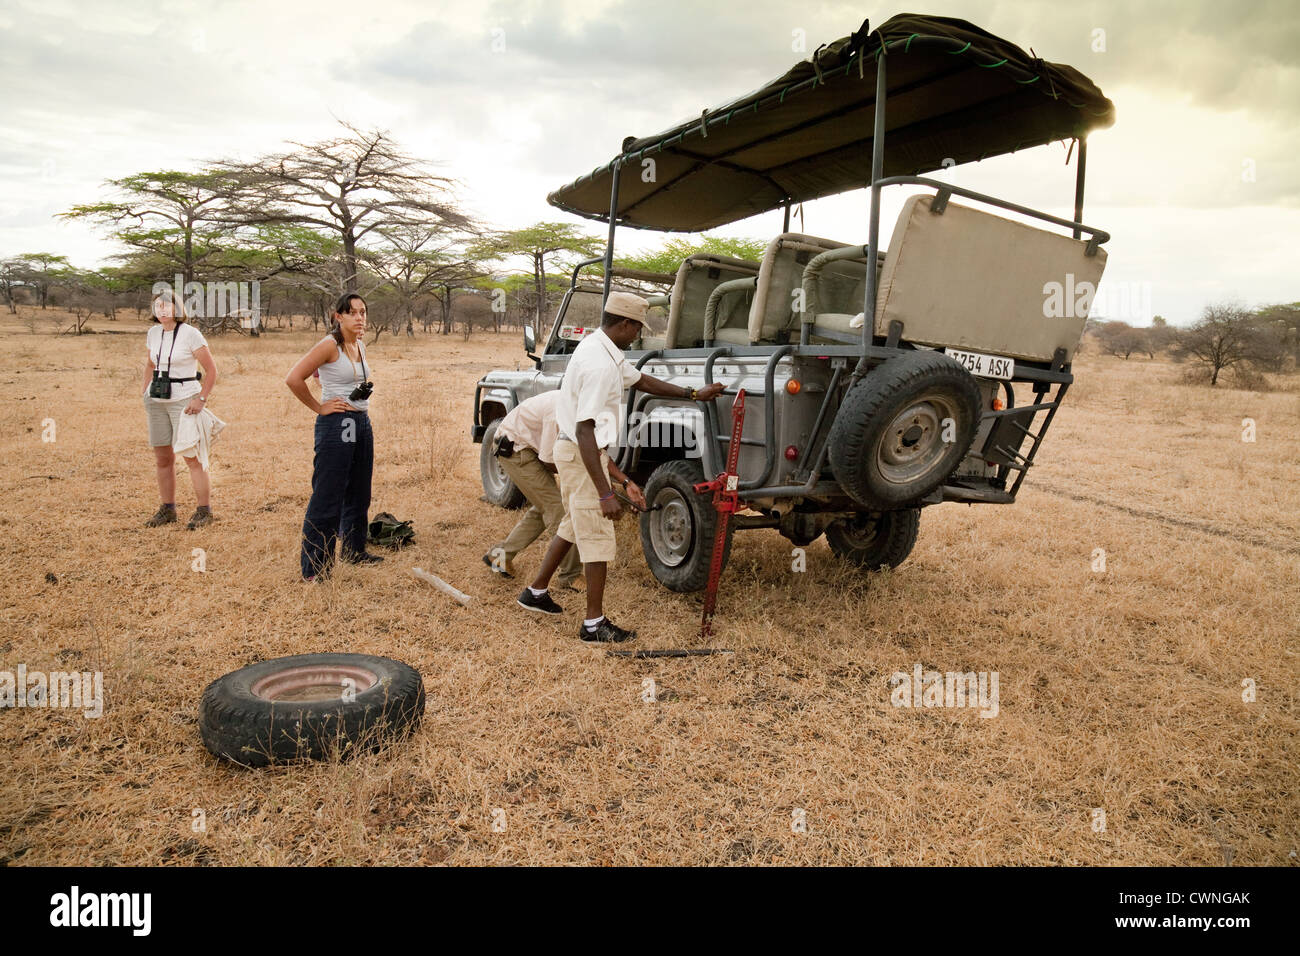 tourists-get-out-of-the-safari-jeep-while-the-guide-and-driver-change-CWNGAK.jpg